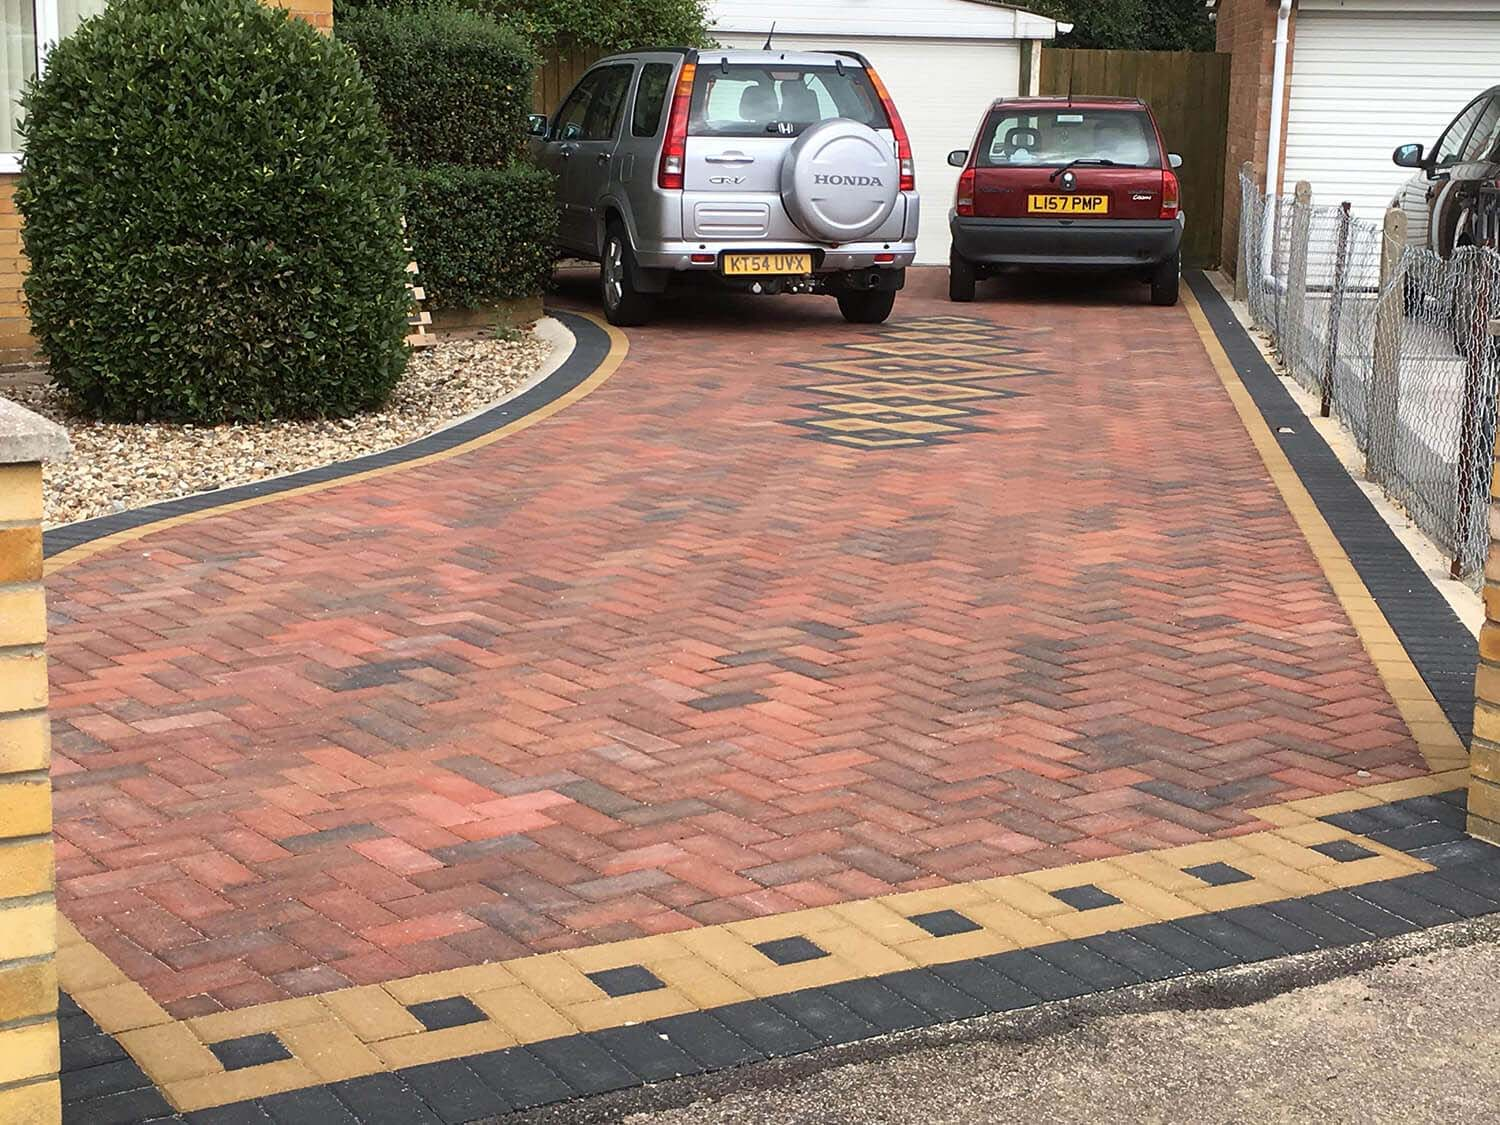 Paving Contractors Near Me in Manchester